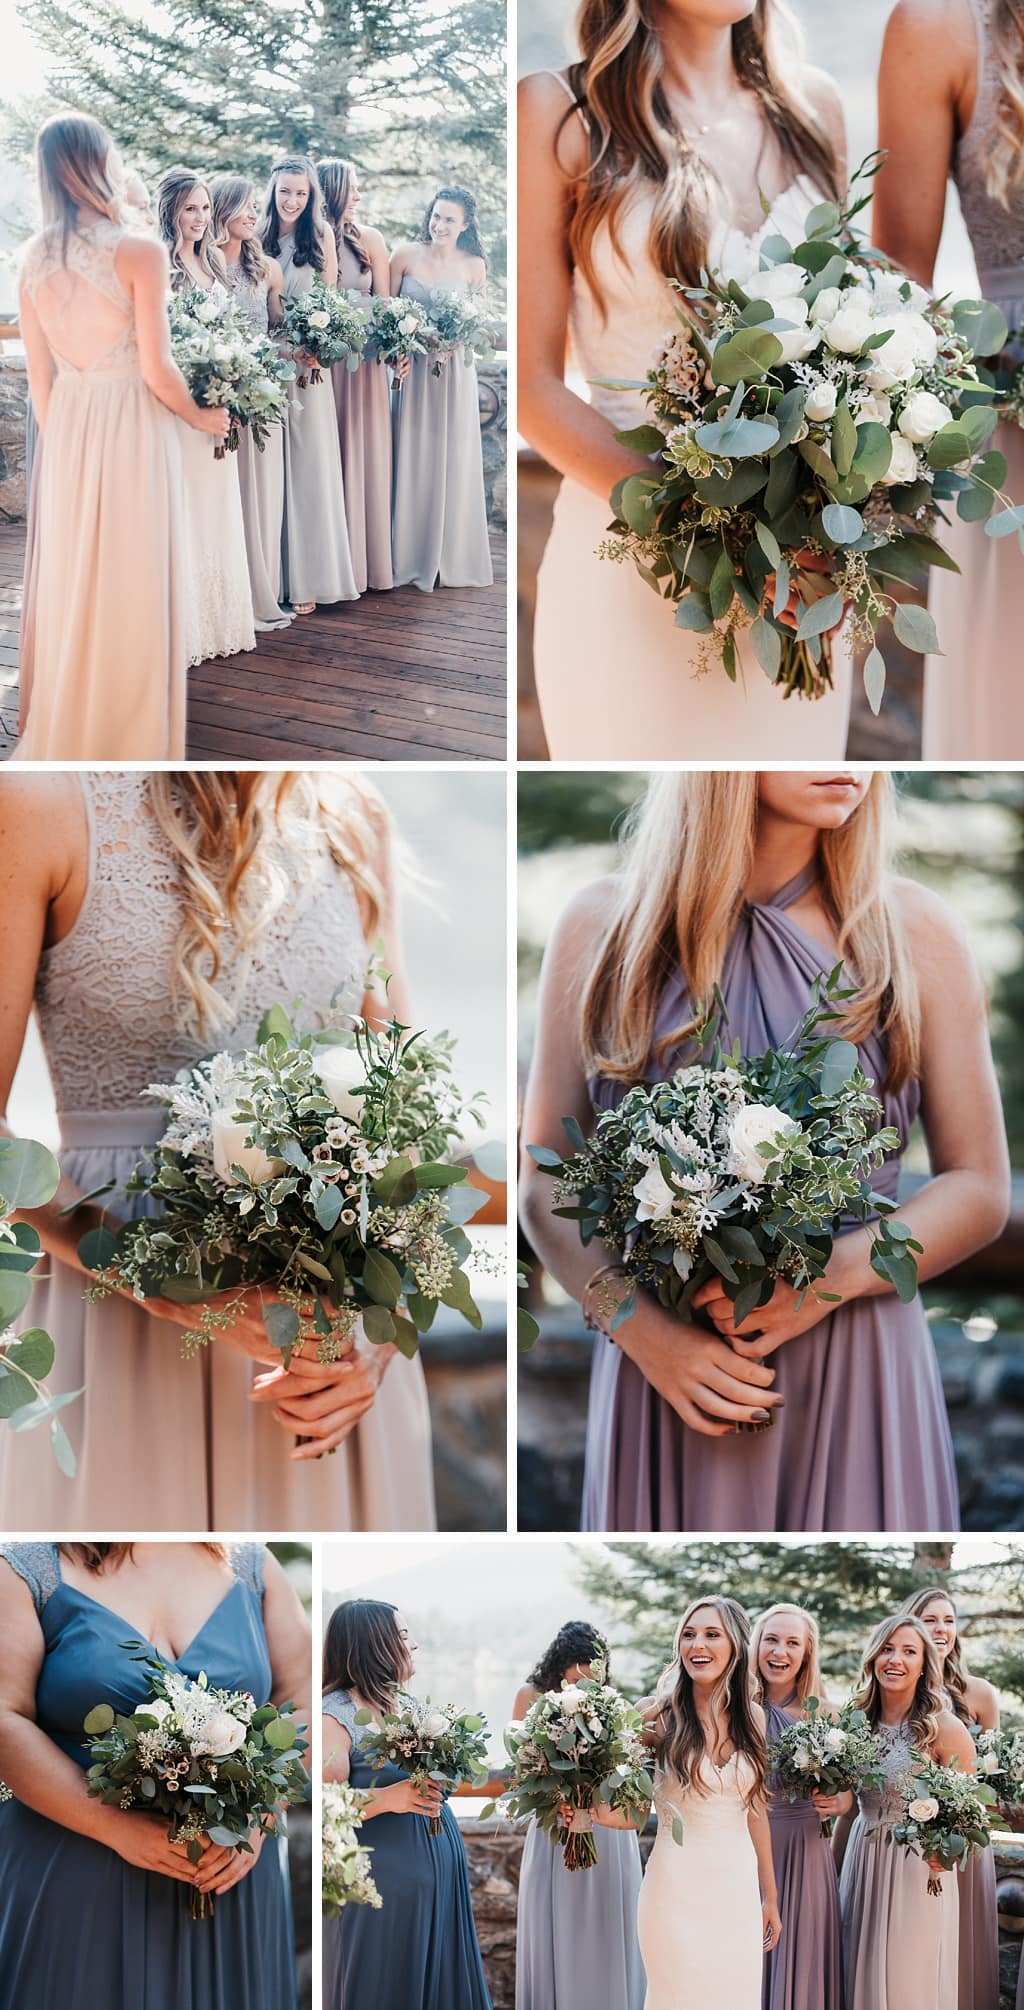 Evergreen Lake House Brunch Wedding Colorado bride with bridesmaids photography green and white bouquets, neutral color dresses